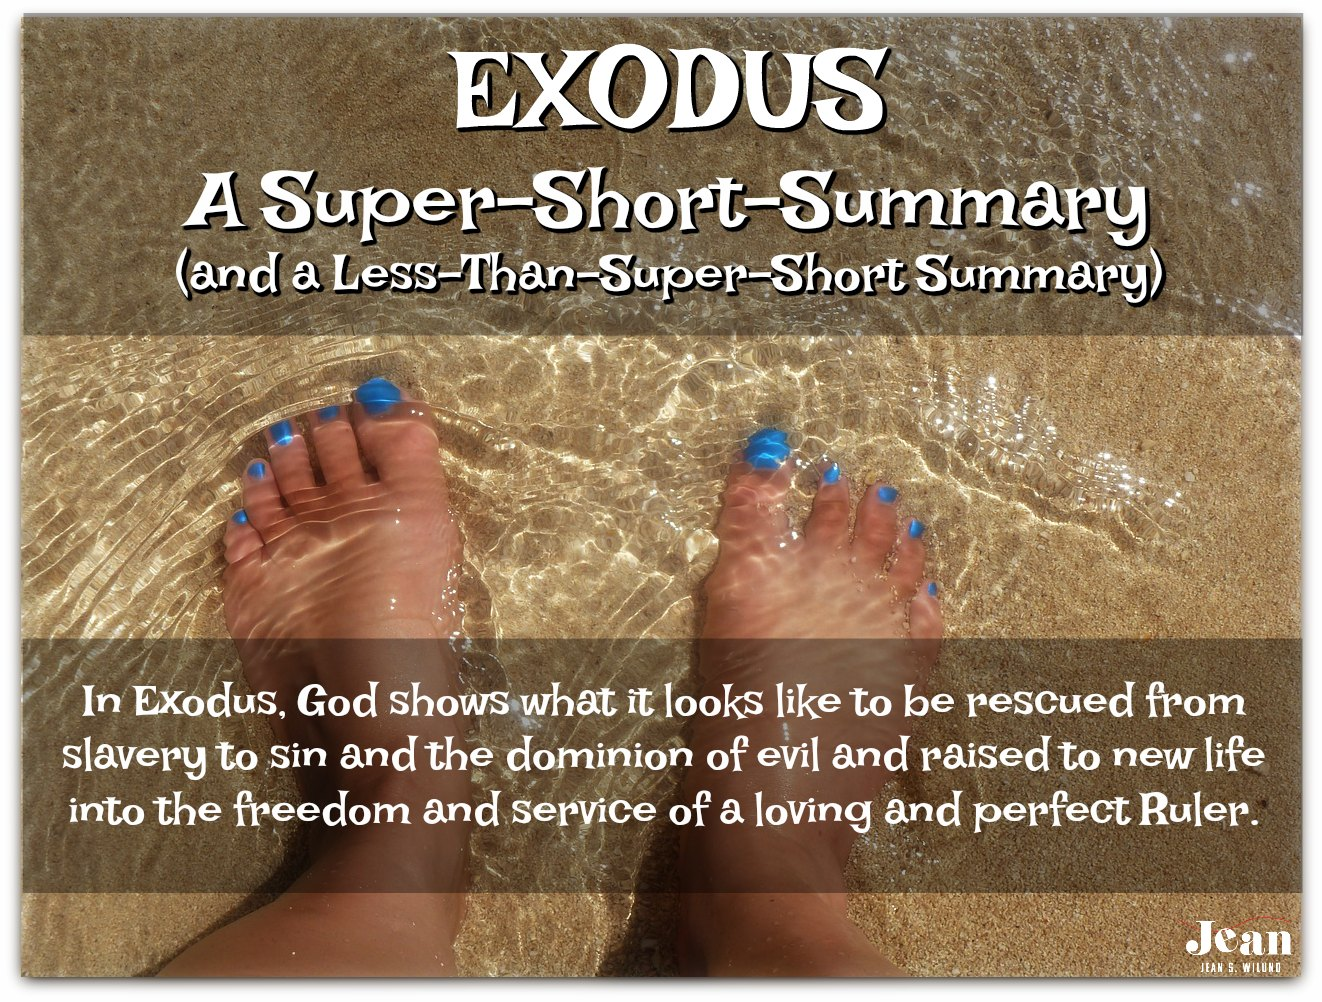 EXODUS - A Super-Short Summary and Less-Than-Super-Short Summary (Welcome to the Bible series) via www.JeanWilund.com